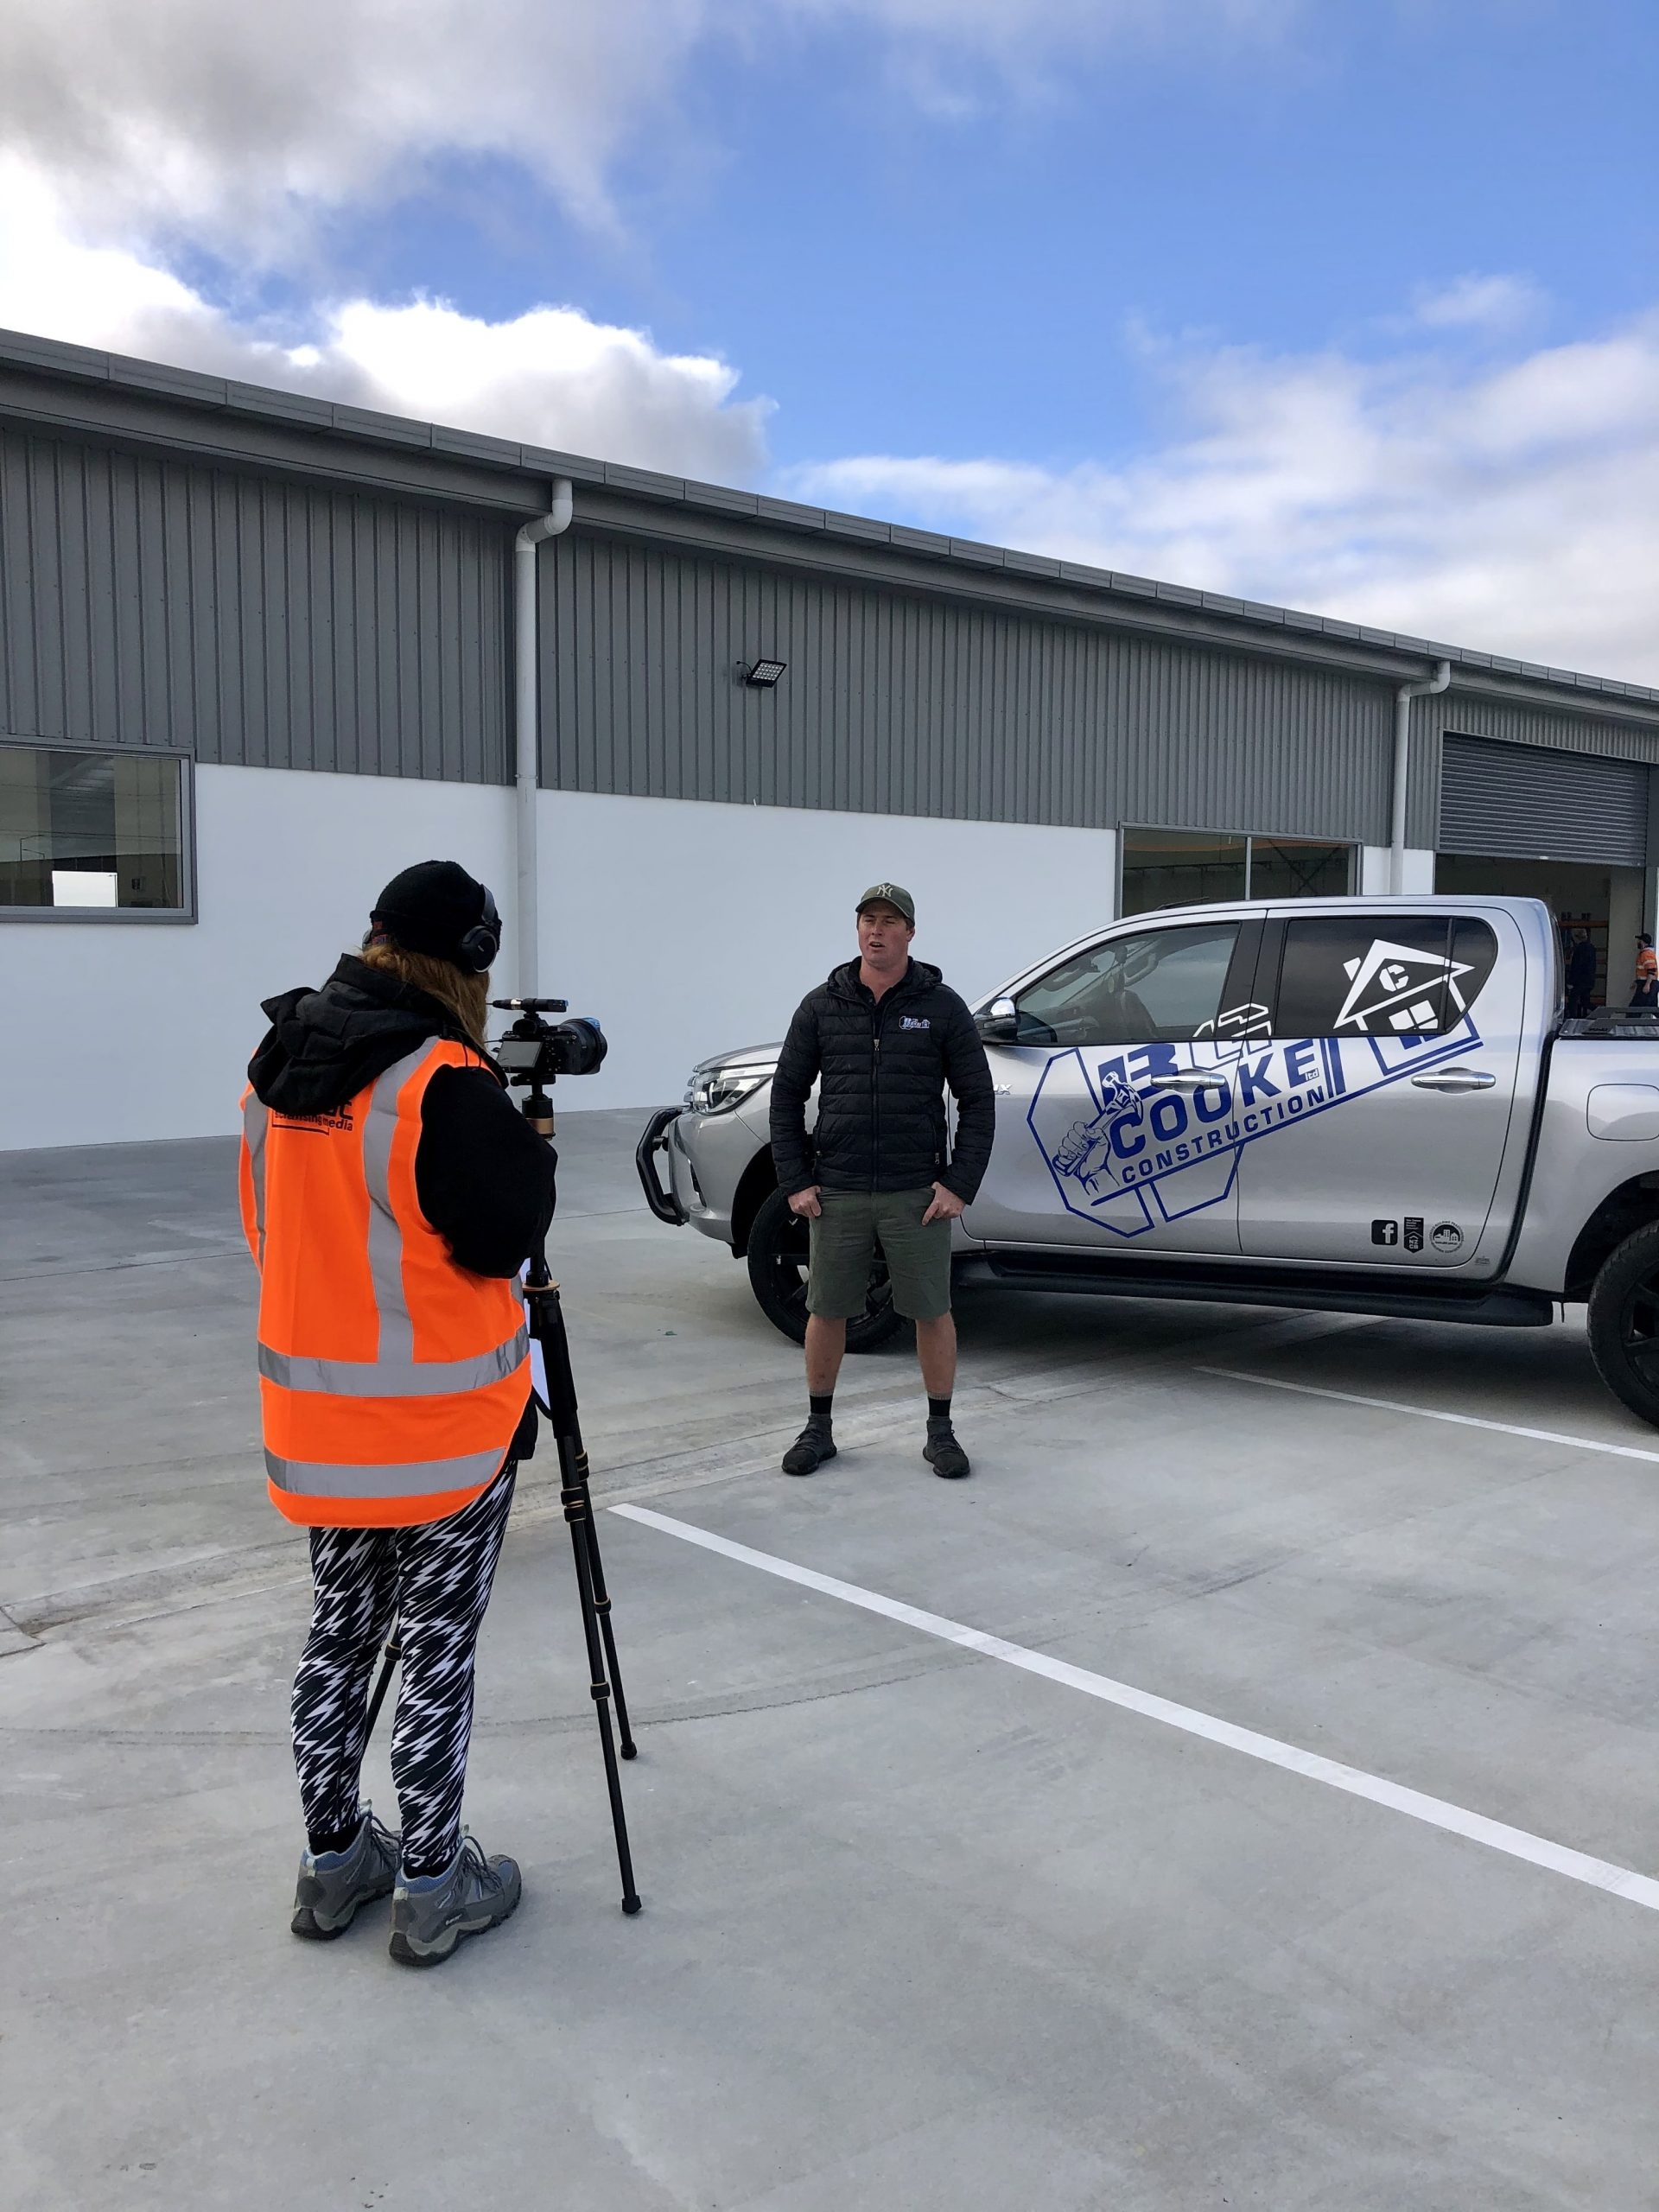 A MoMac videographer filming on site in North Canterbury